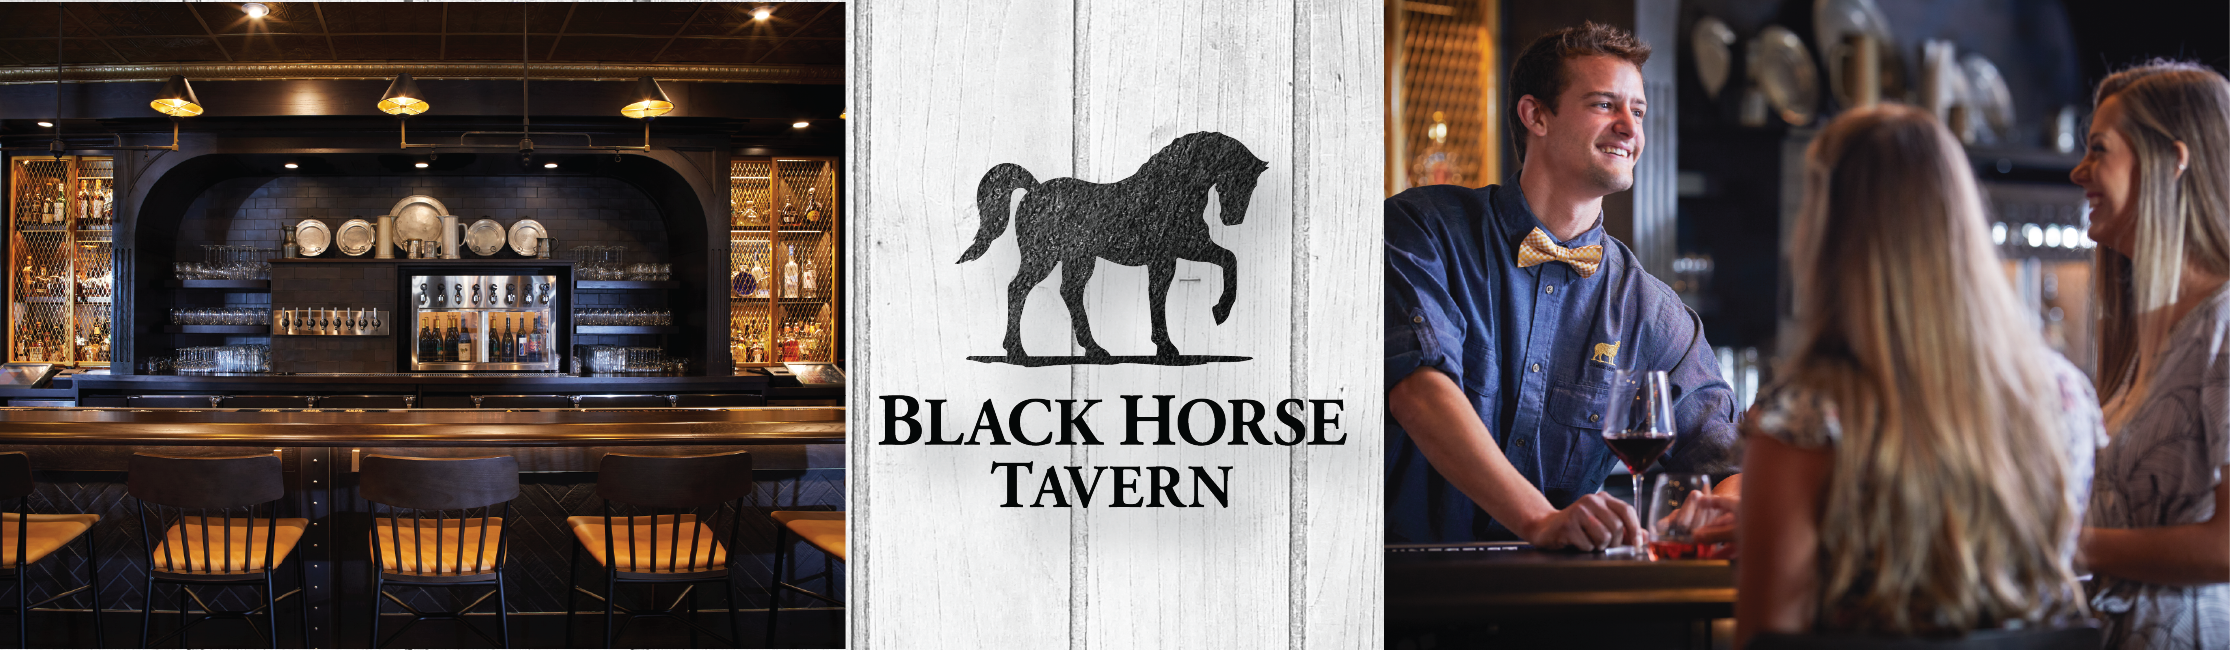 image of bar at Black Horse Tavern